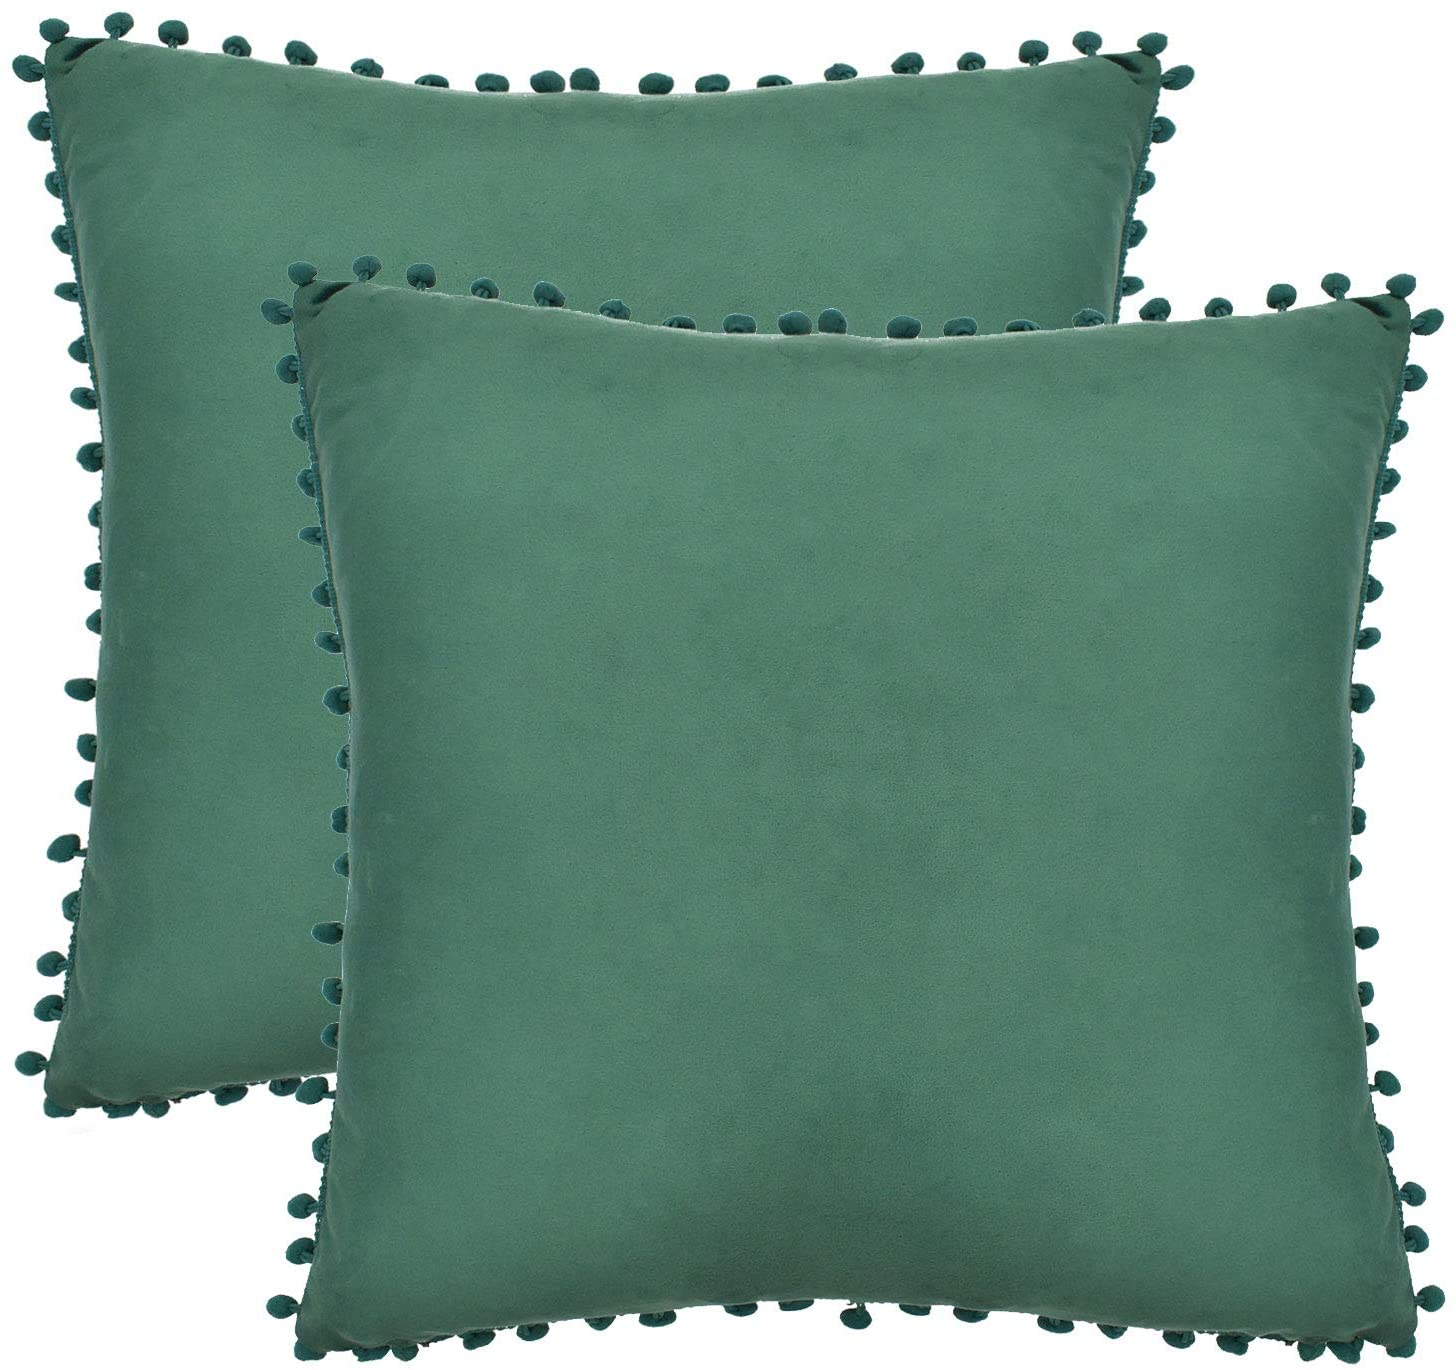 XIECCX 2 Pack Velvet Throw Pillow Covers, Pom Poms Super Soft Decorative Square Pillowcase Solid Cushion Covers Home Decoration for Sofa Bedroom Car 18 x 18 Inch, Green